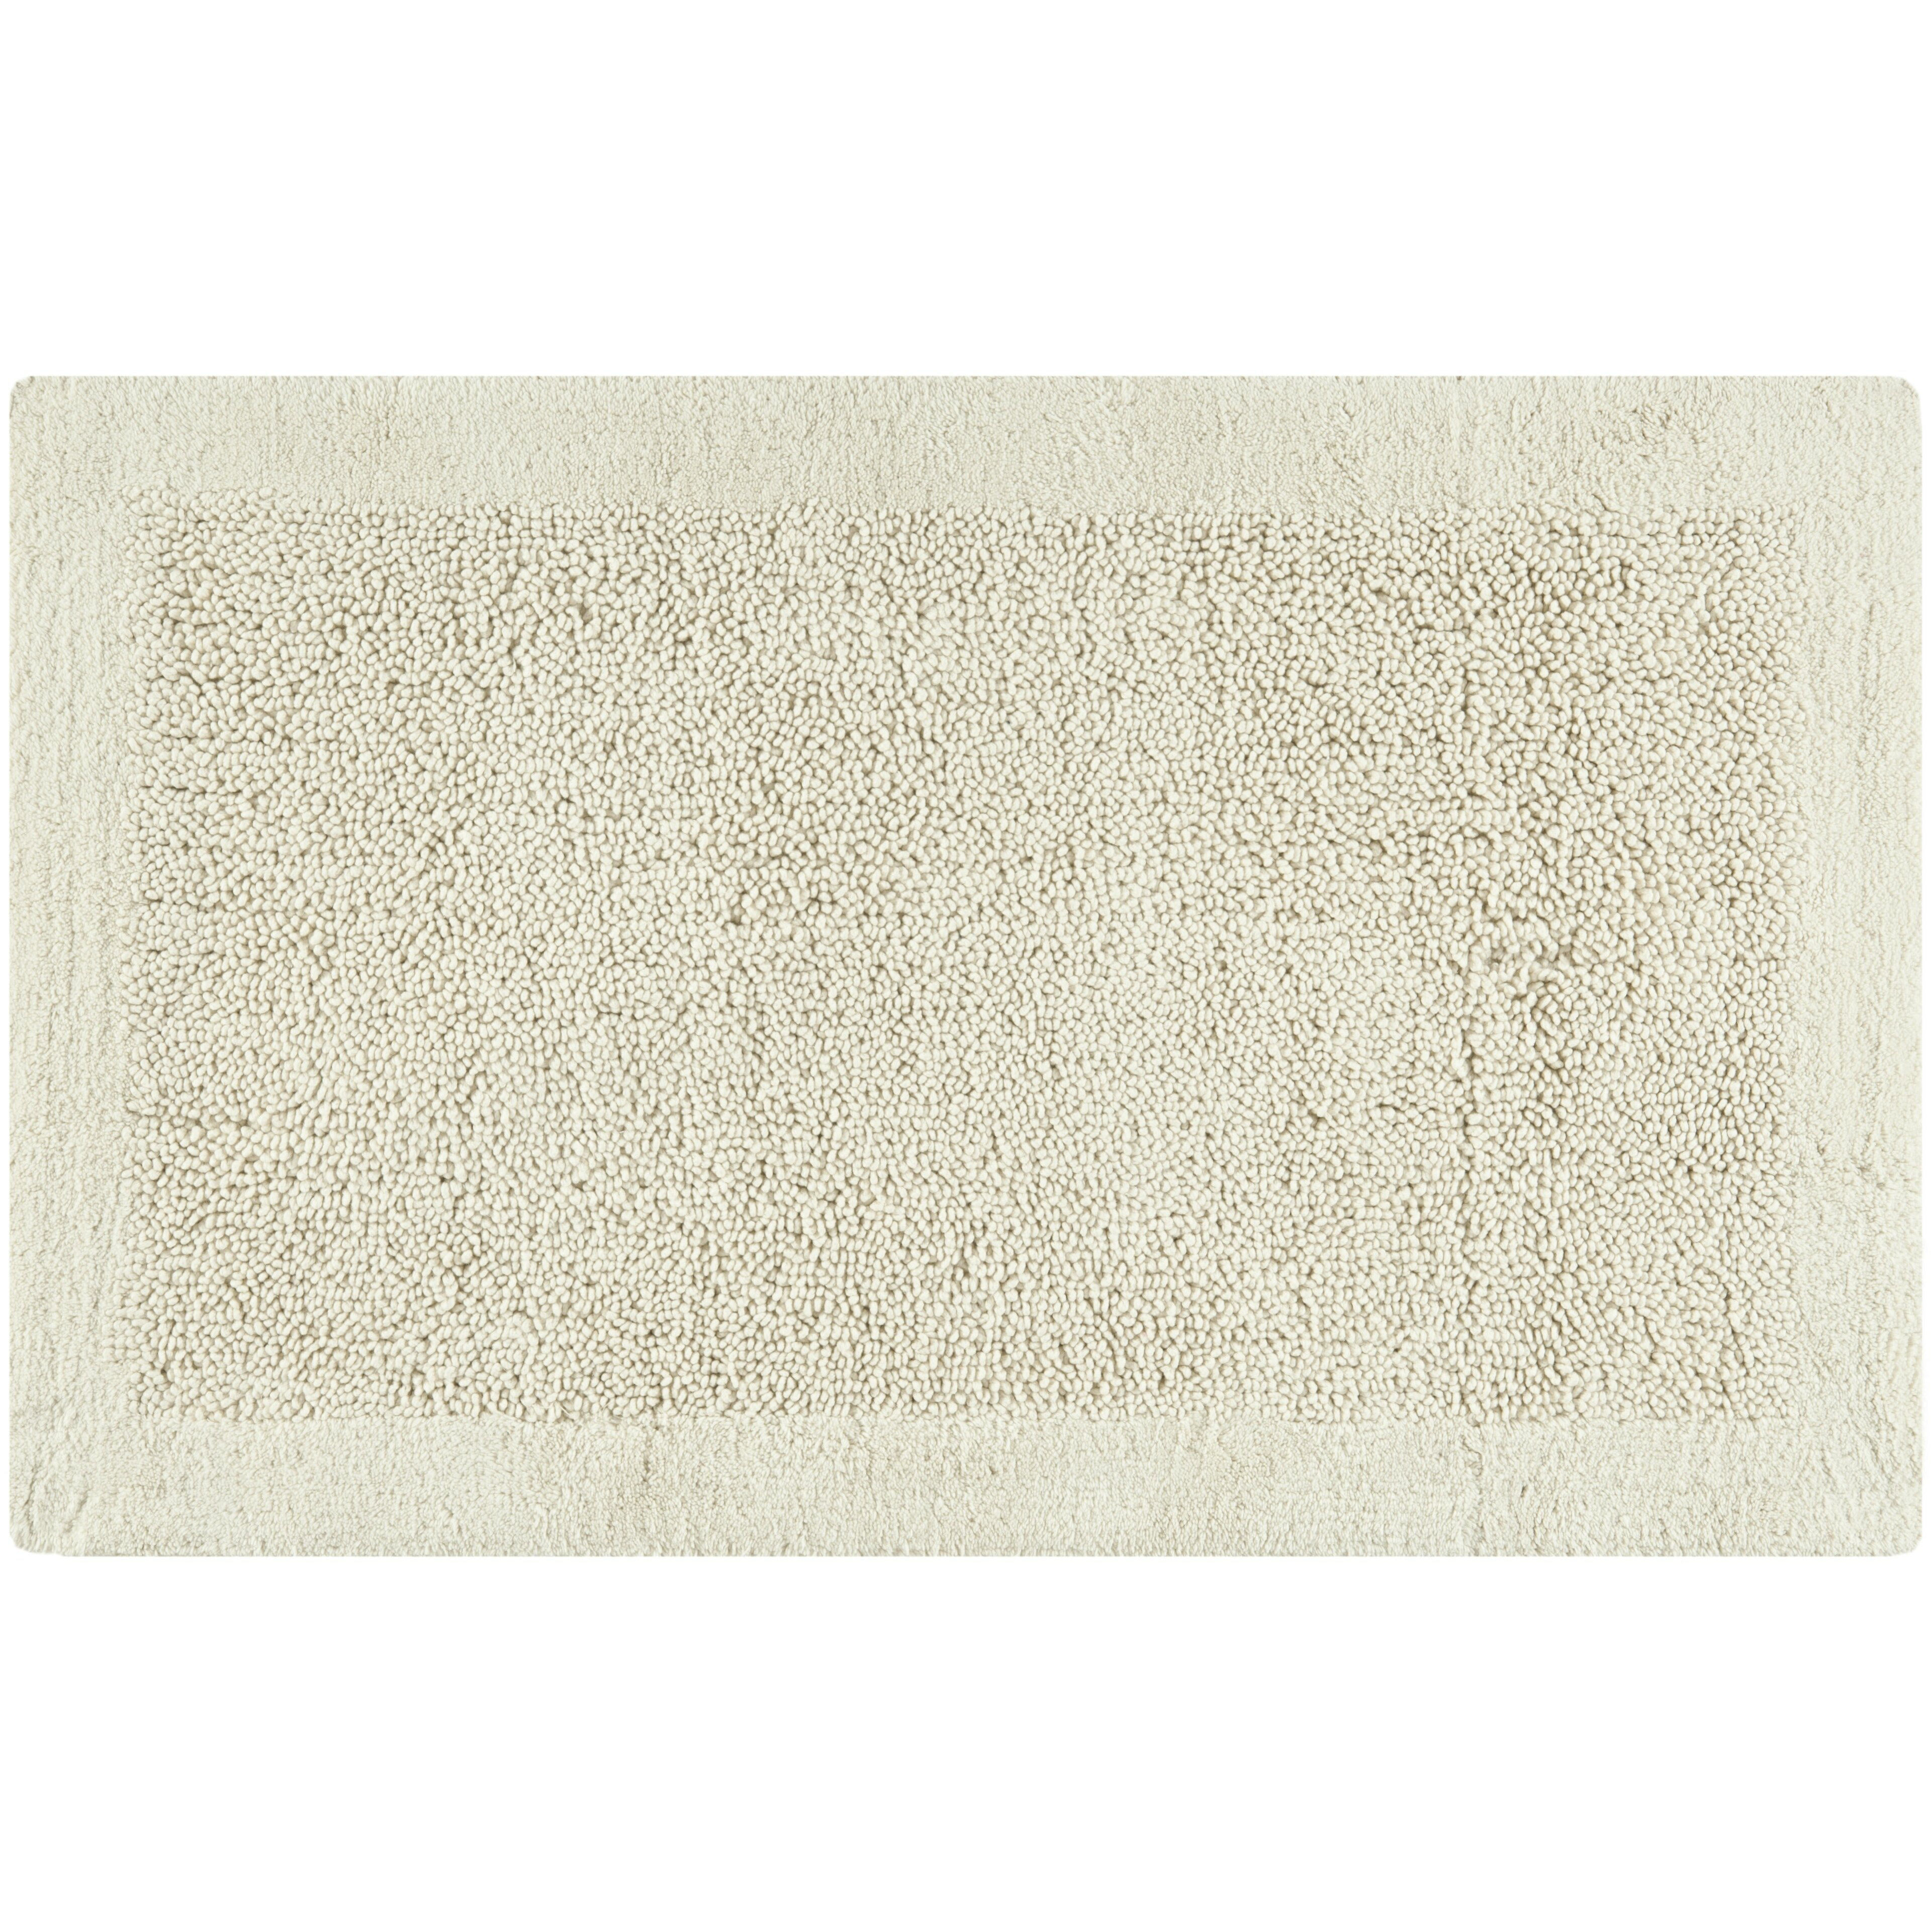 Safavieh plush master bath rug reviews wayfair for Master bathroom rugs